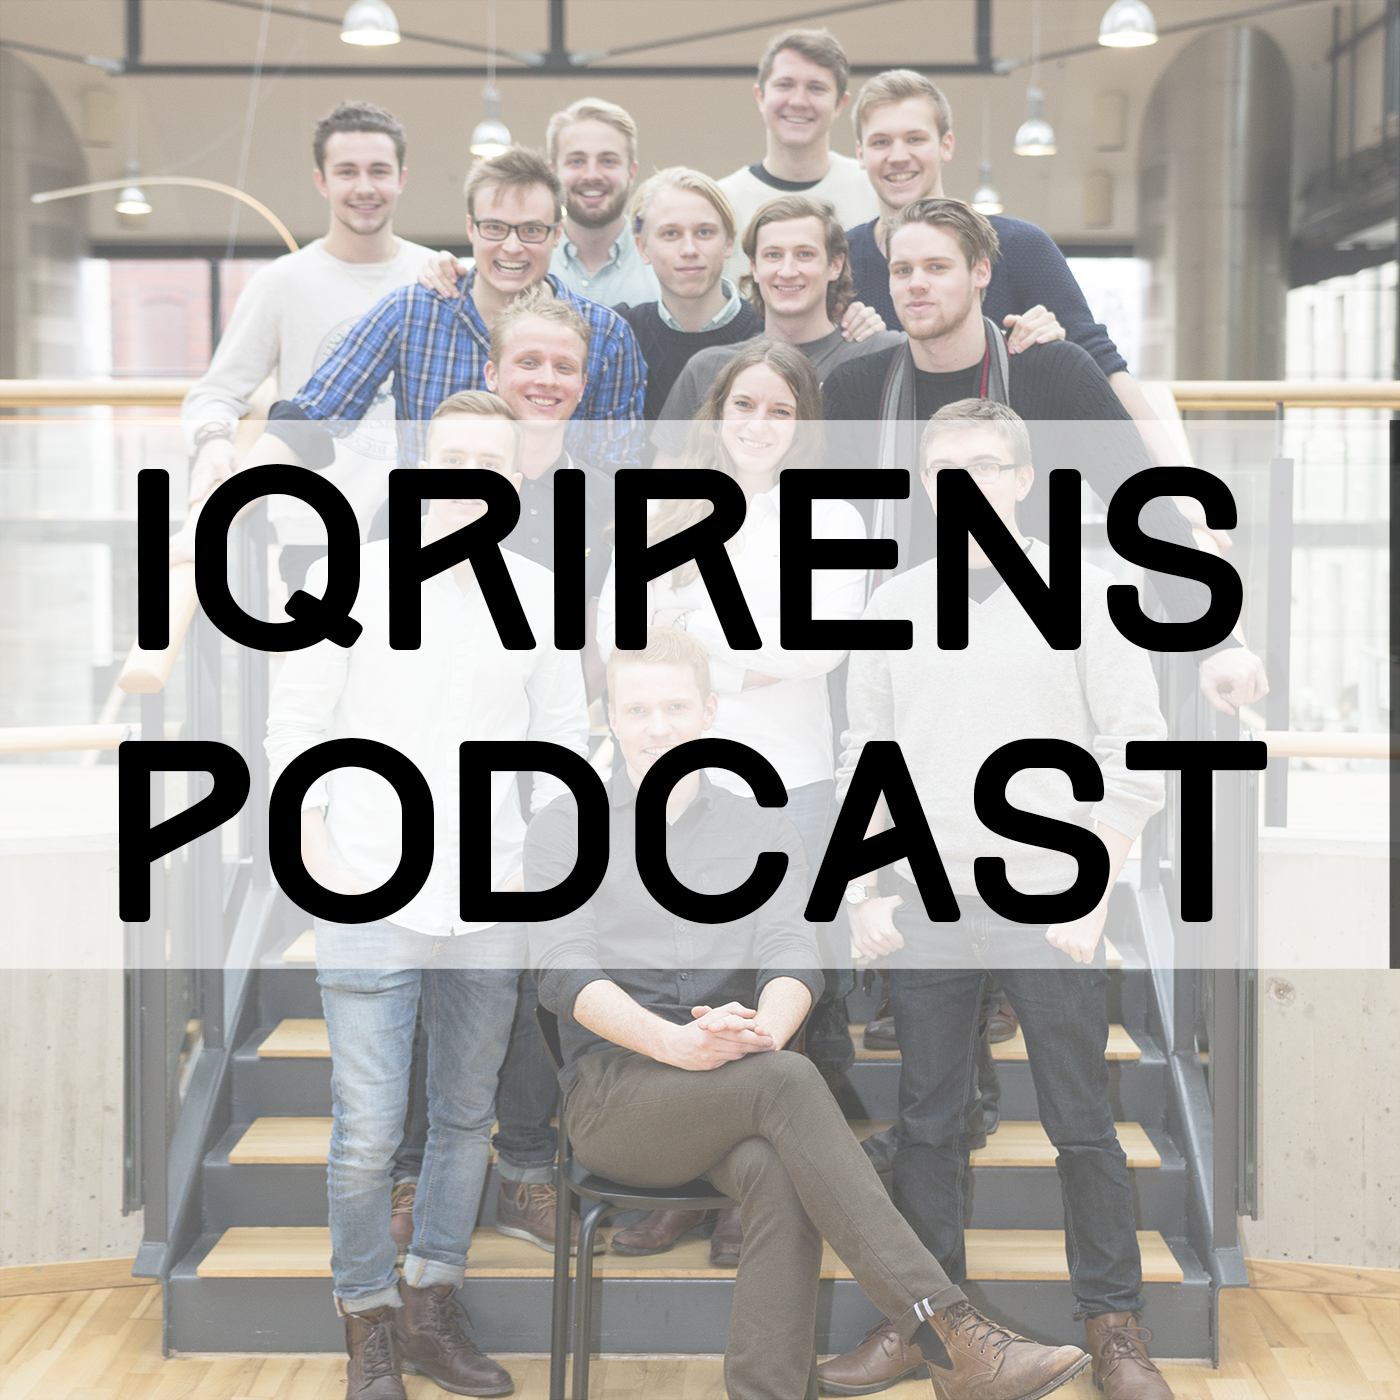 IQrirens podcast